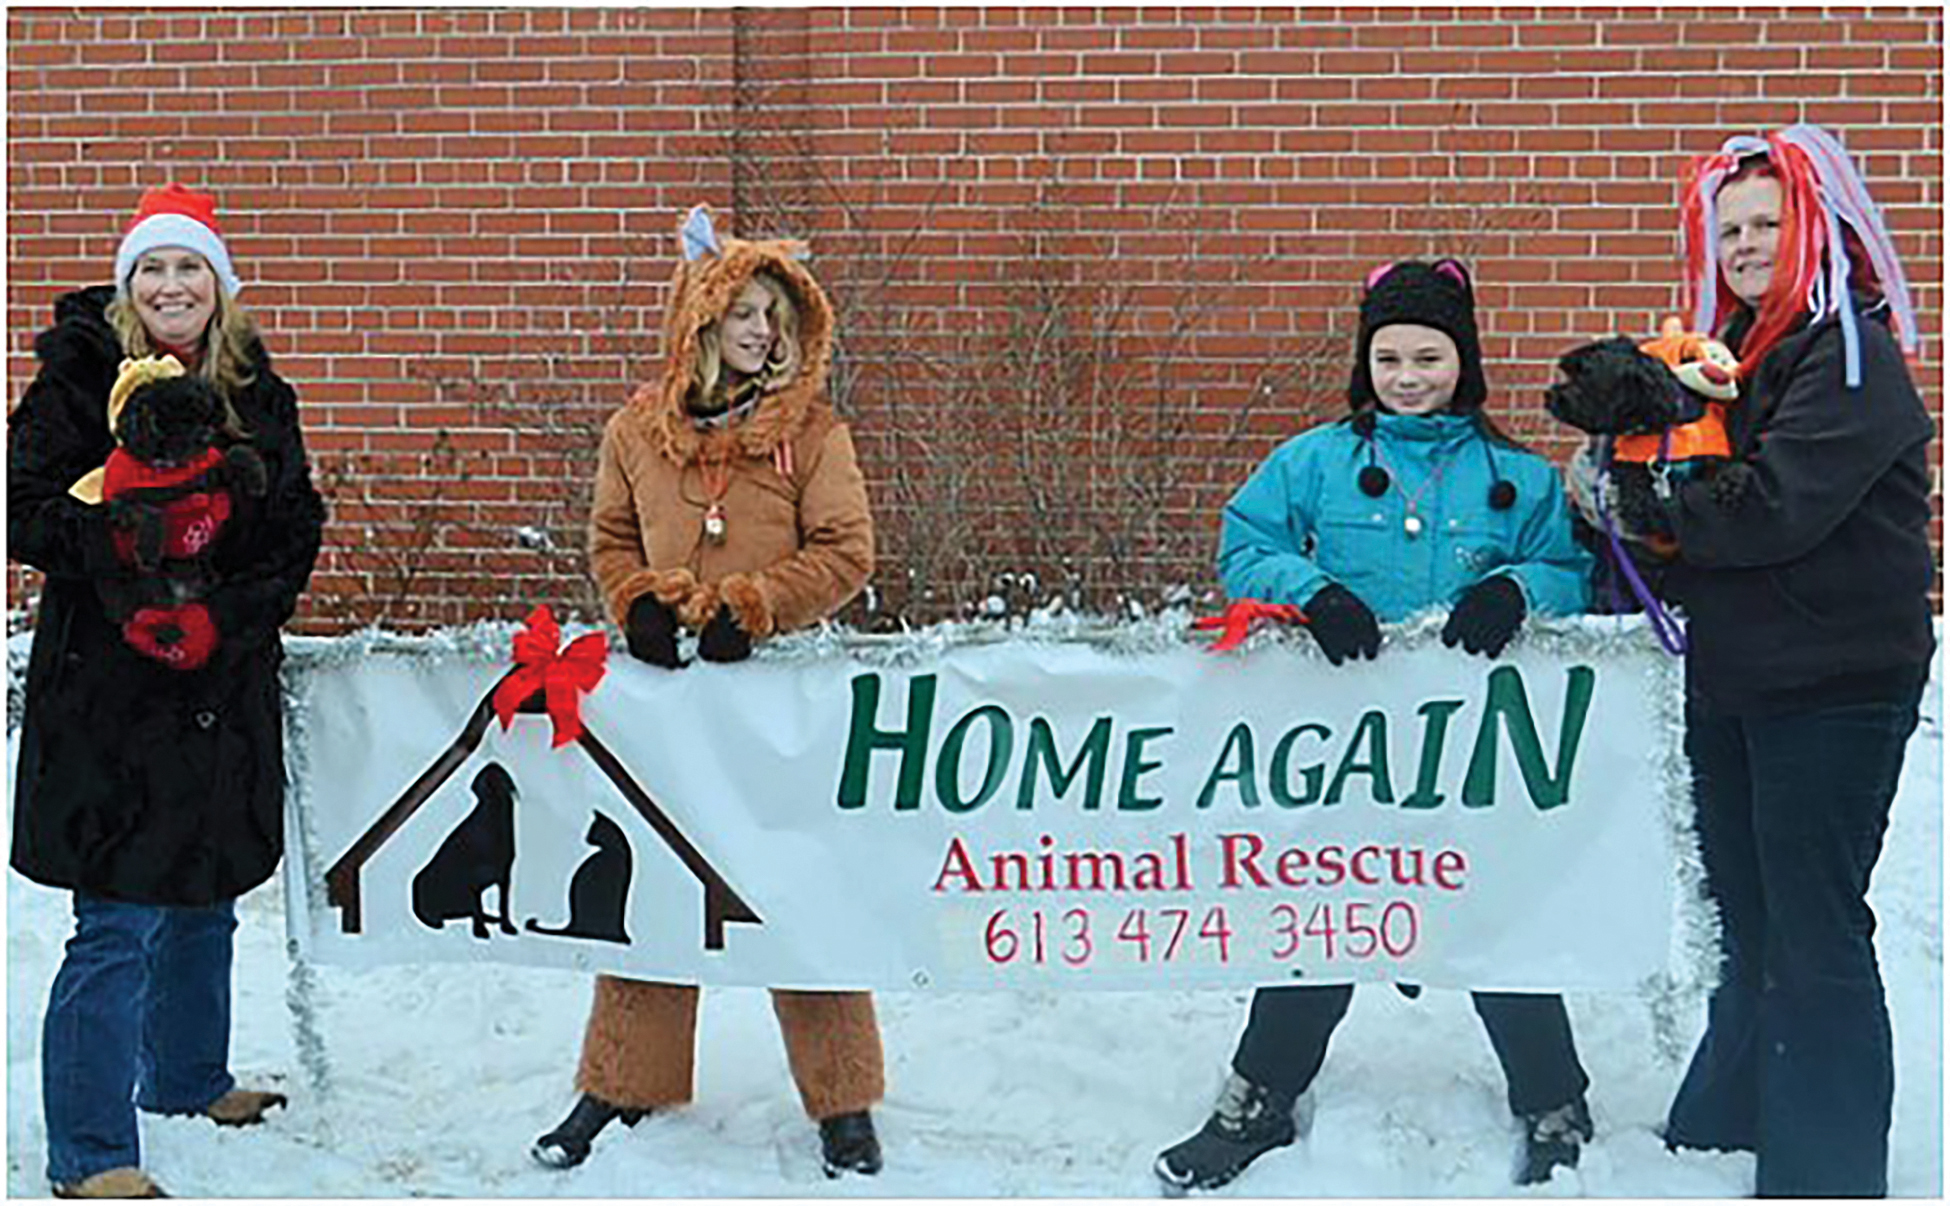 Founded in 2009, Home Again considers the internet essential to its services. Its website is linked to Petfinder and its Facebook page includes almost 1,500 members.Photo courtesy Home Again